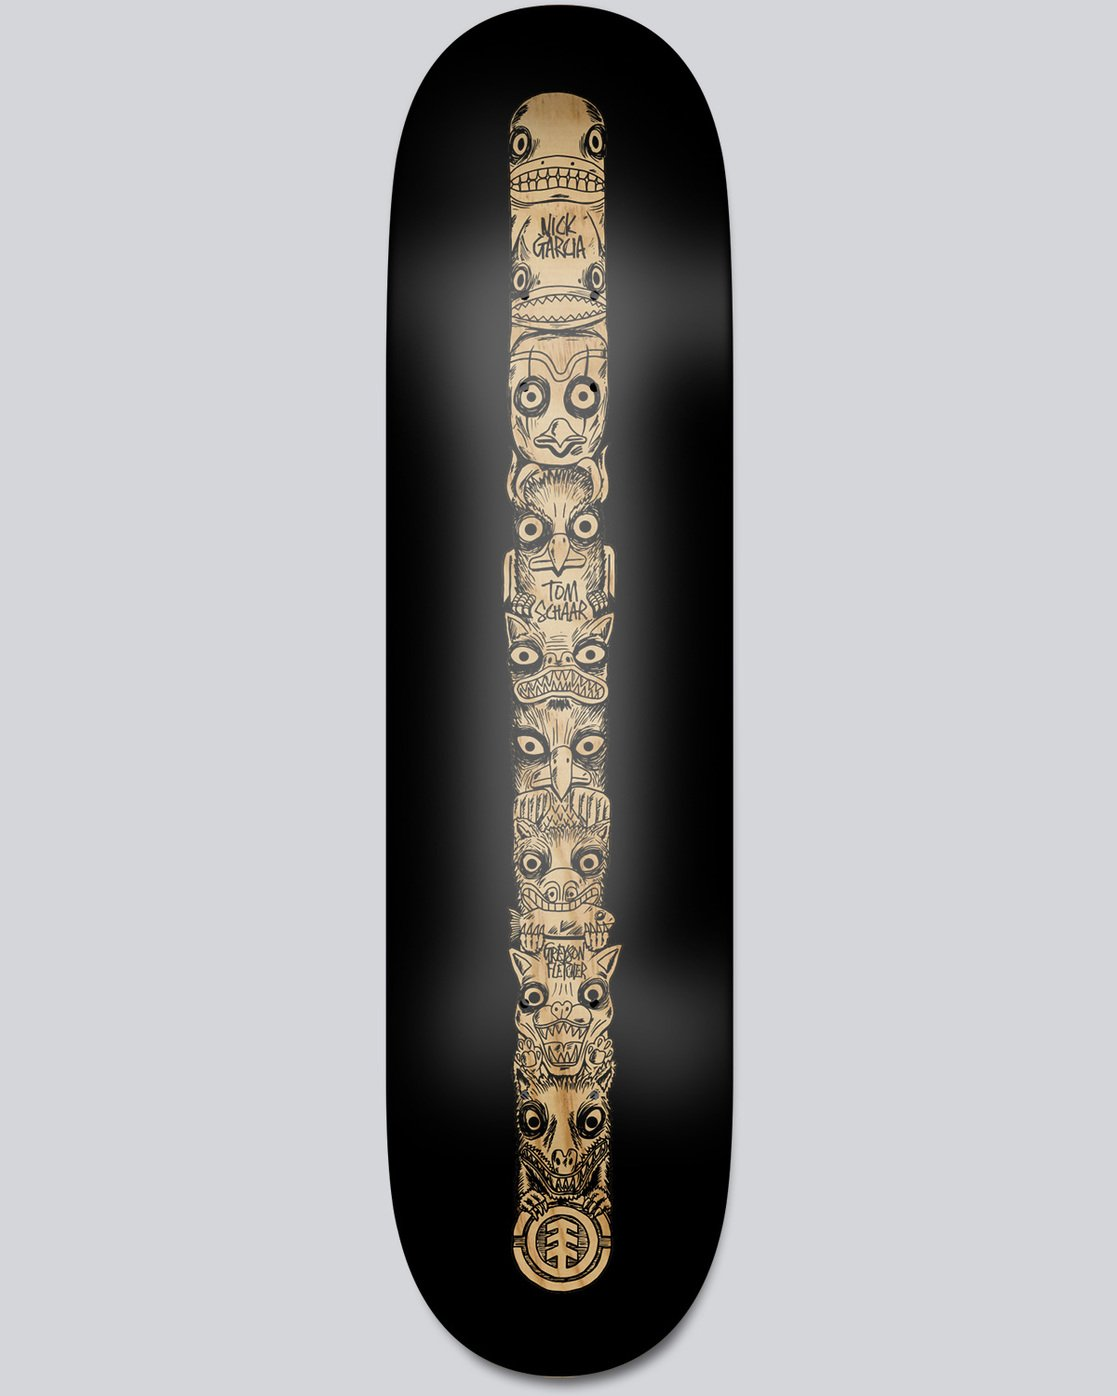 1 Fos Totem Deck - Schaar - 7.8  BDPRUFTS Element